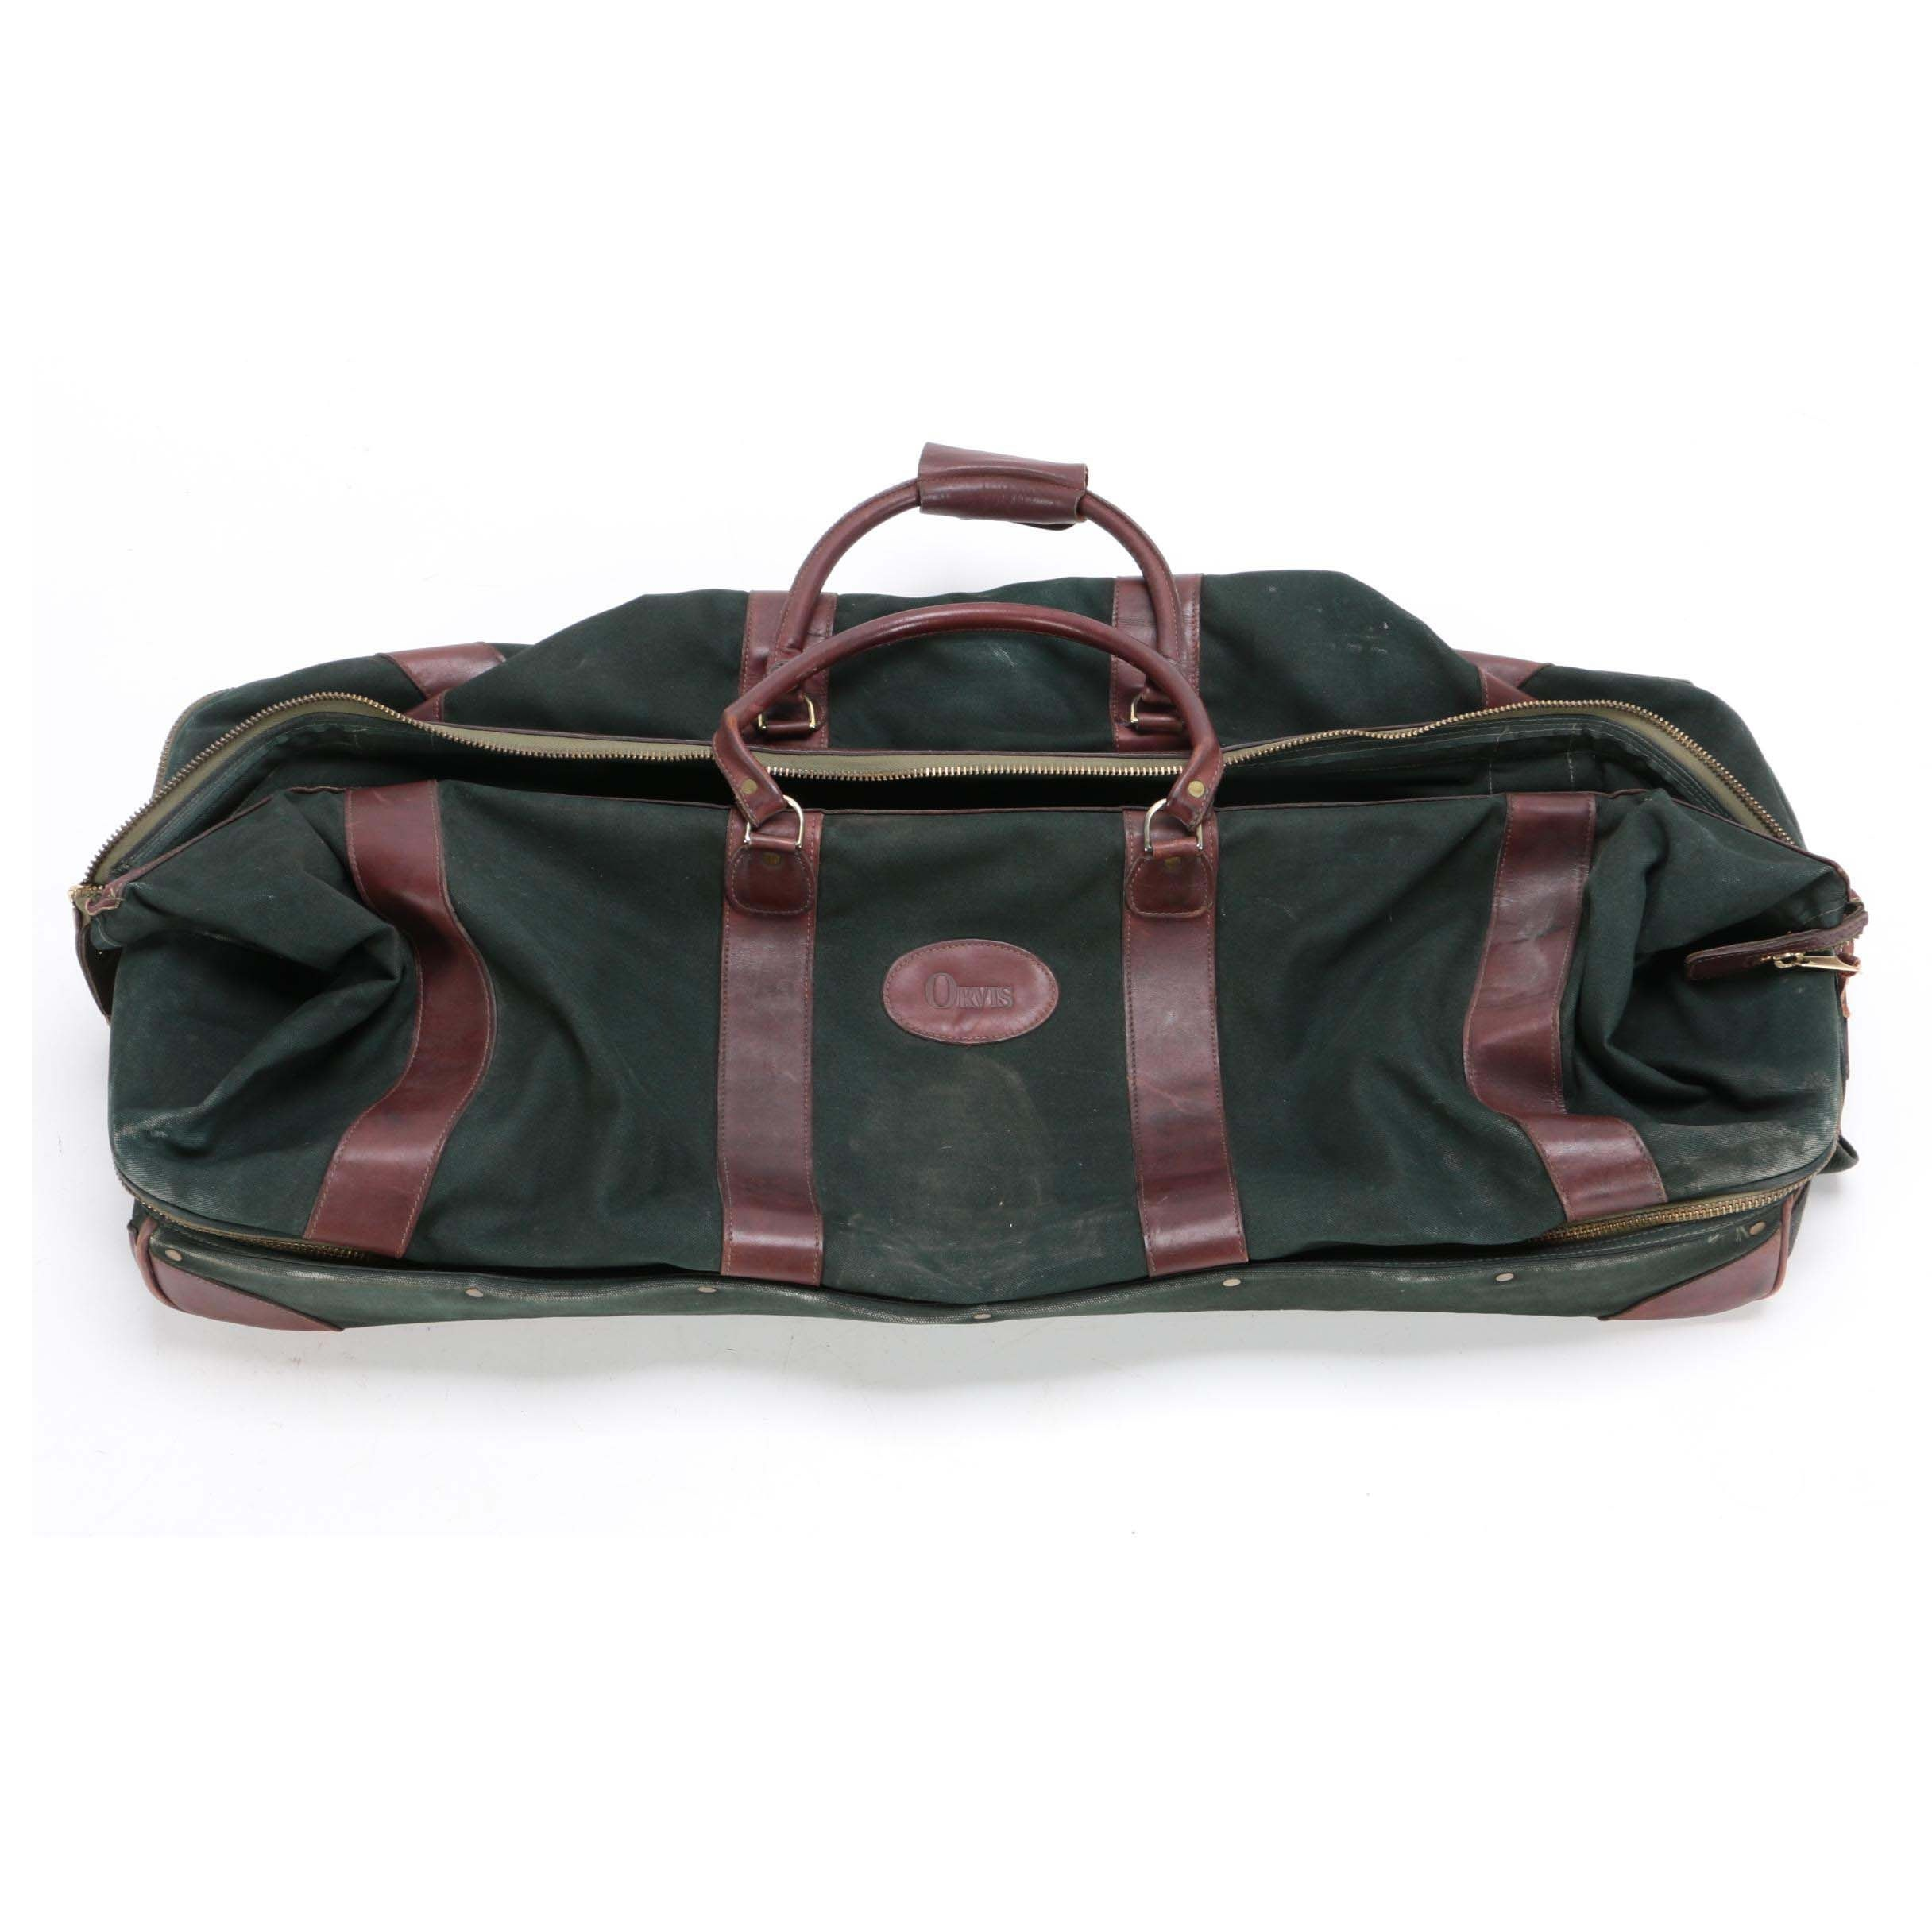 Orvis Battenkill Rolling Magnum Green Canvas and Brown Leather Duffel Bag